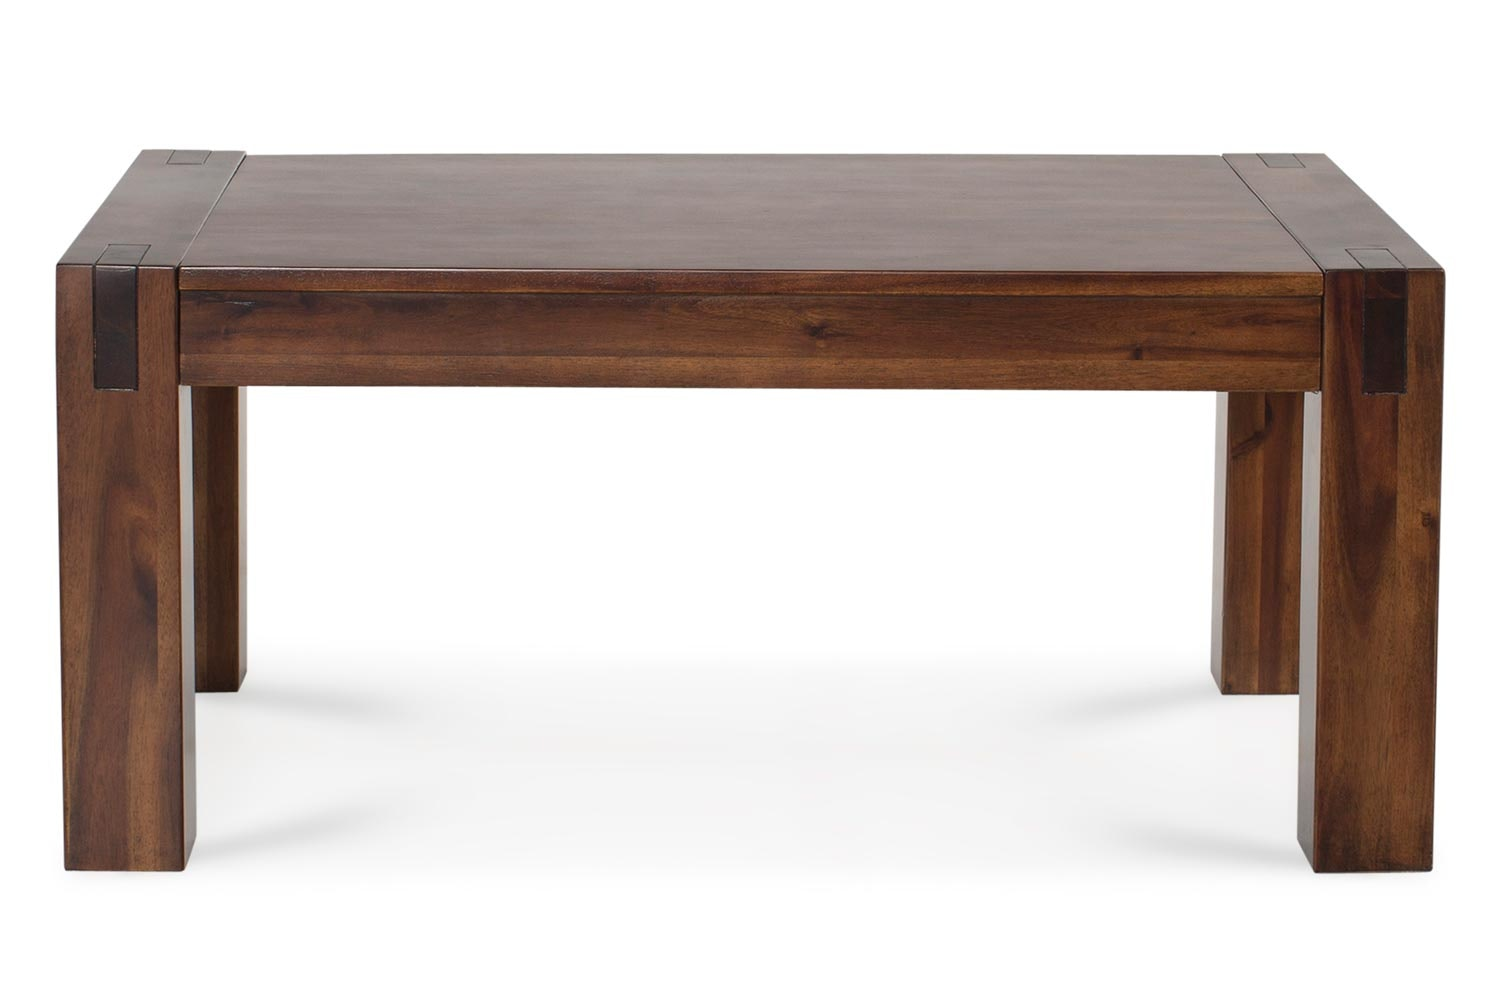 Orient Coffee Table